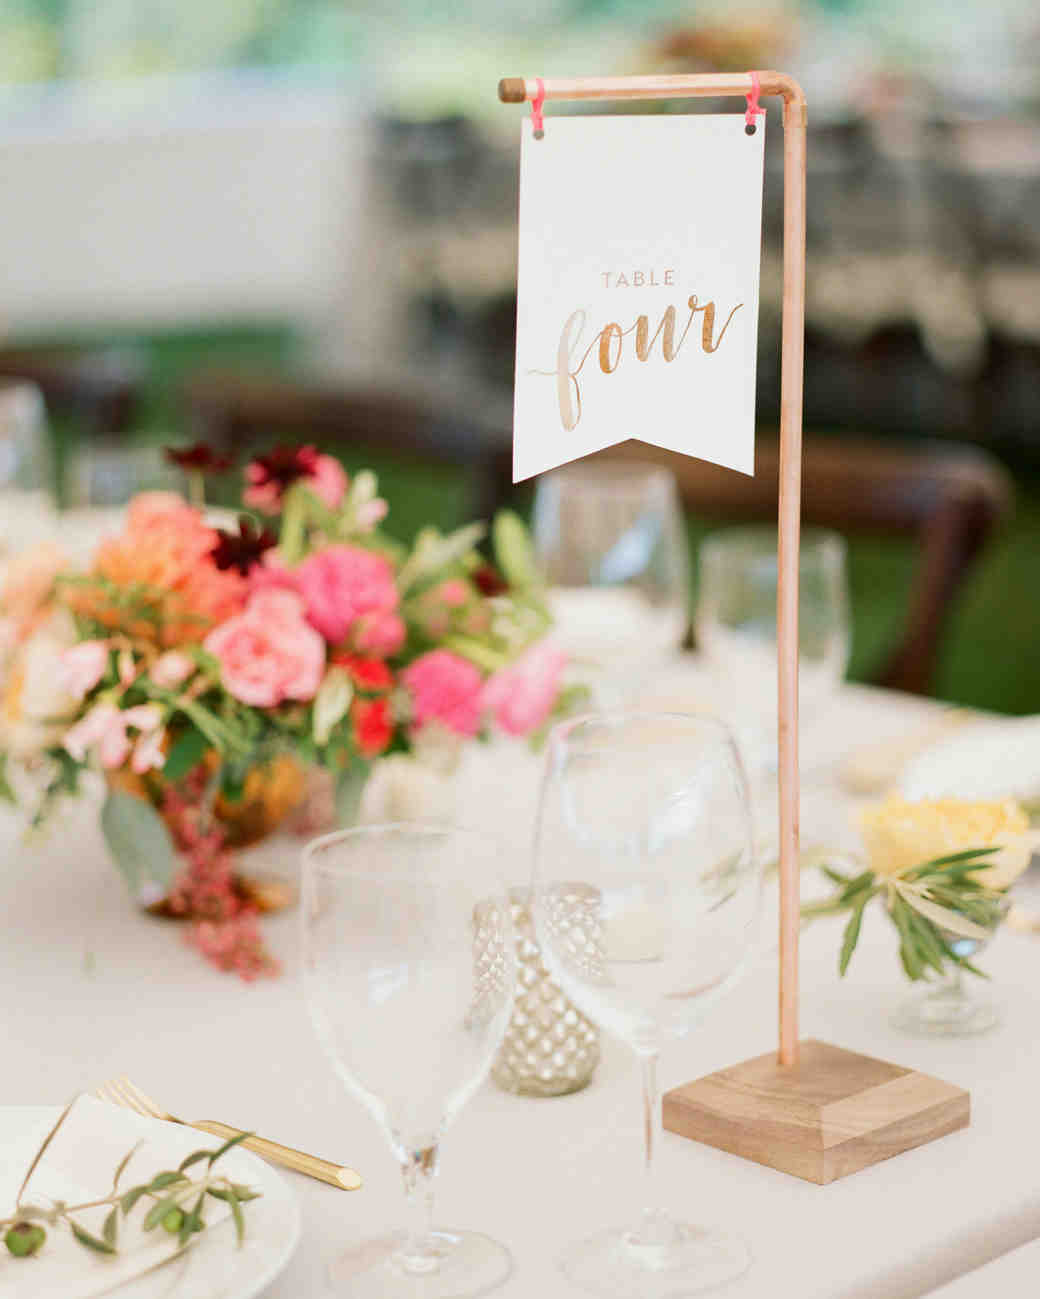 banner decor table numbers flower centerpieces